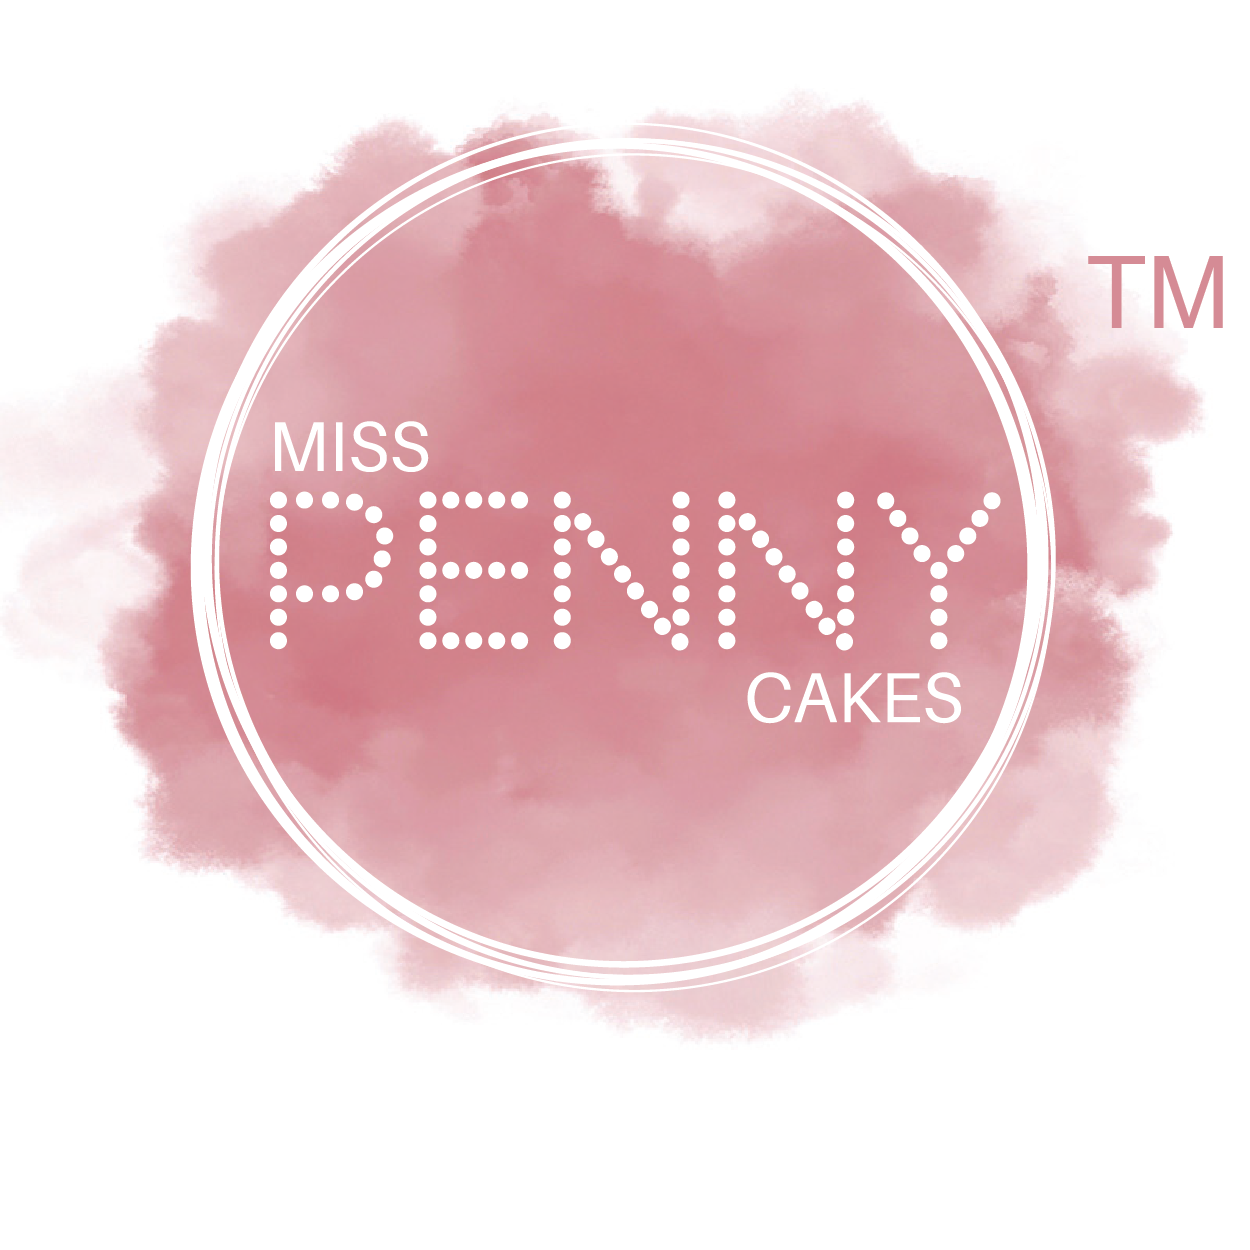 Miss Penny Cakes | Finest Cake Specialist in Melbourne | Beautiful Custom Made Cakes, Cafe and Cake Shop Melbourne VIC, Parkville, Moonee Ponds, Pascoe Vale South, Grantham, Pearson | Shop tel: 03 8383 9173 | Out of Hours: 0421 822 834 |